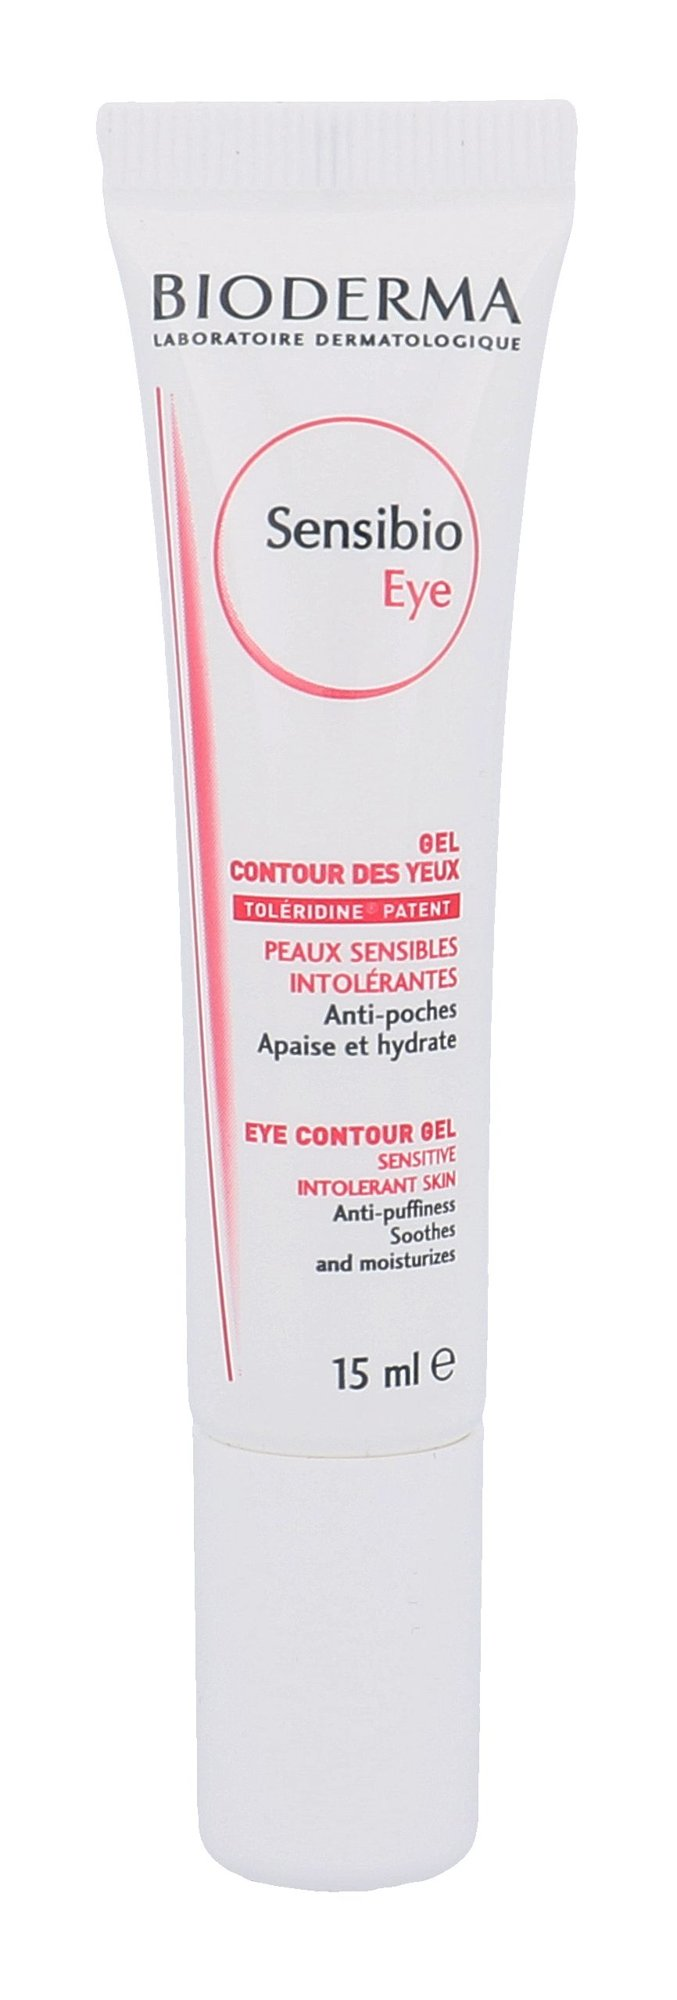 BIODERMA Sensibio Cosmetic 15ml